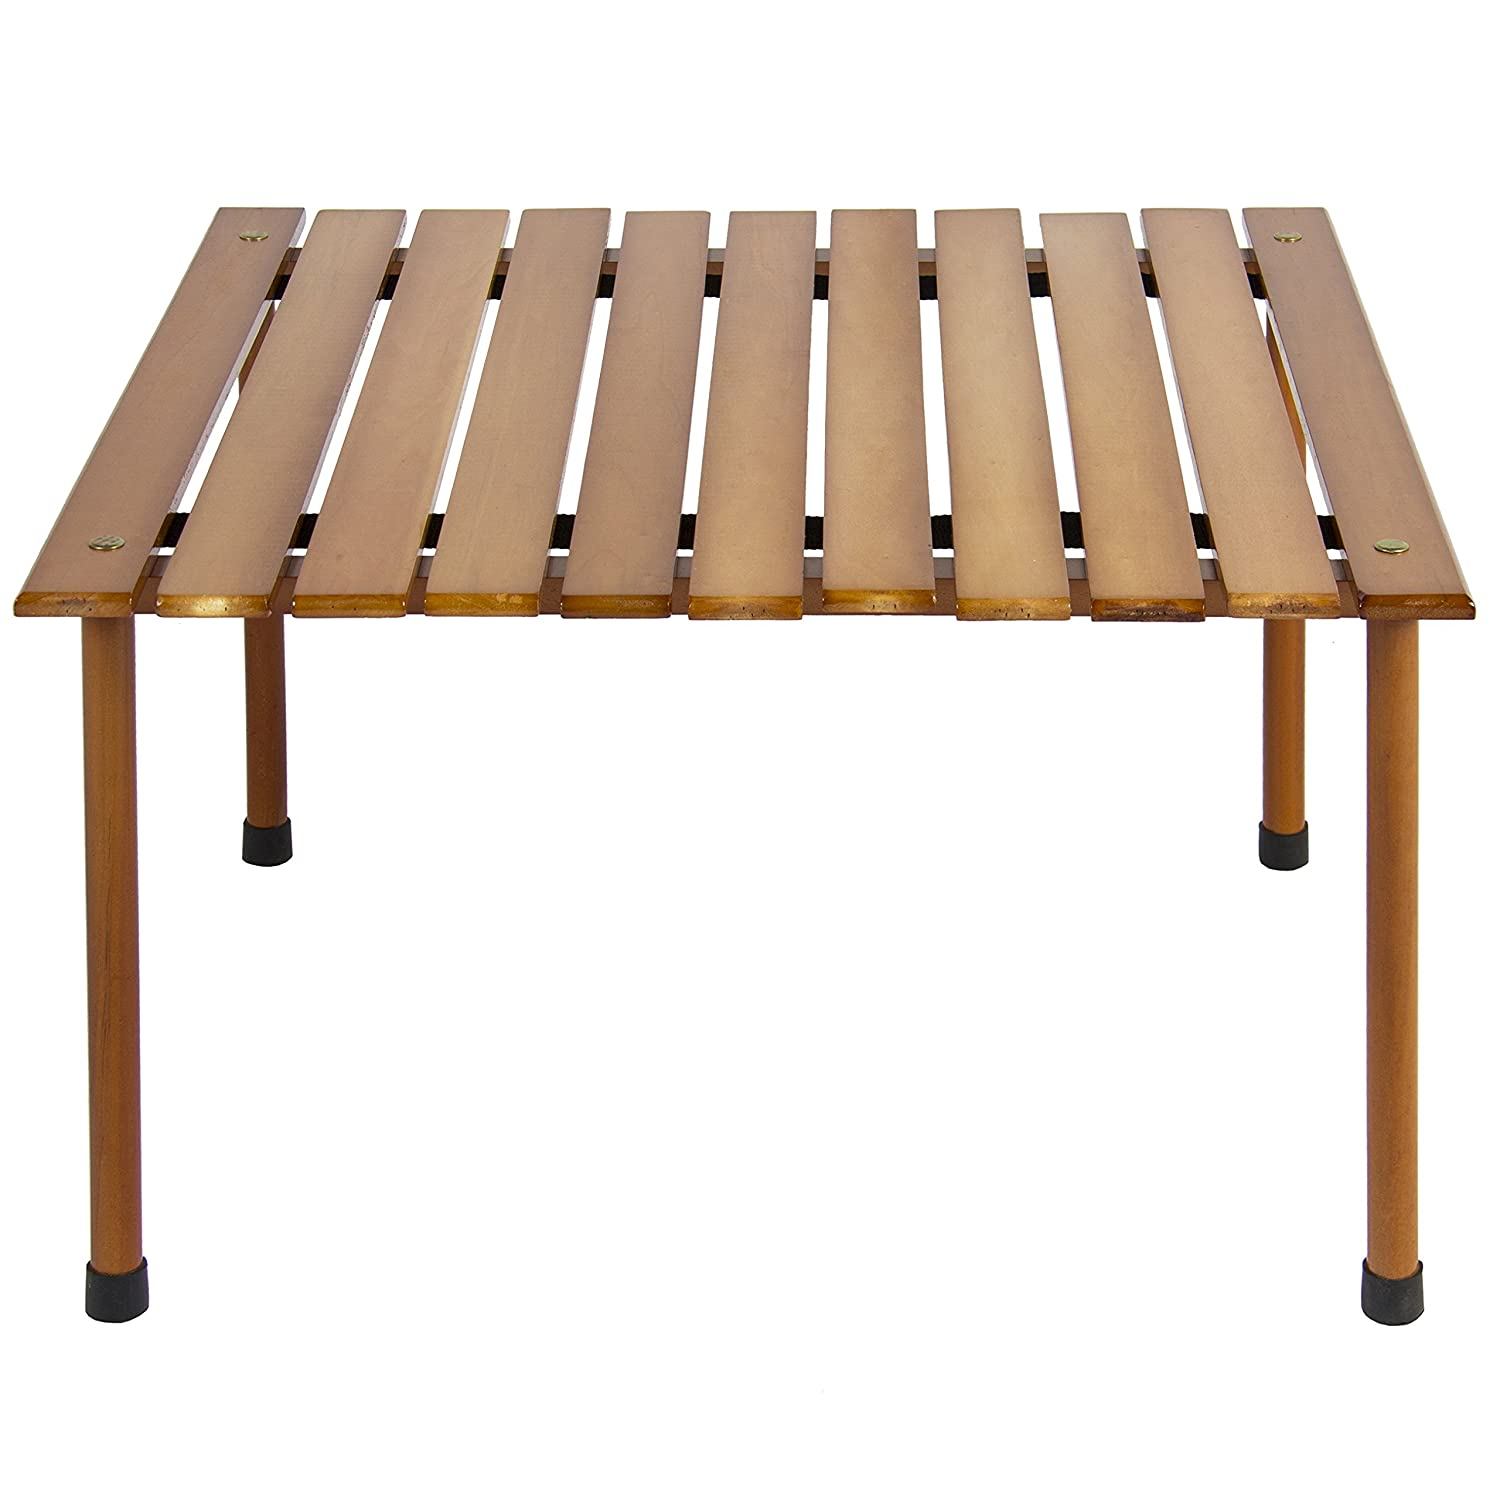 Amazon com   Best Choice Products Wooden Portable Table With Carrying Case    Patio  Lawn   GardenAmazon com   Best Choice Products Wooden Portable Table With  . Outdoor Table Legs For Sale. Home Design Ideas